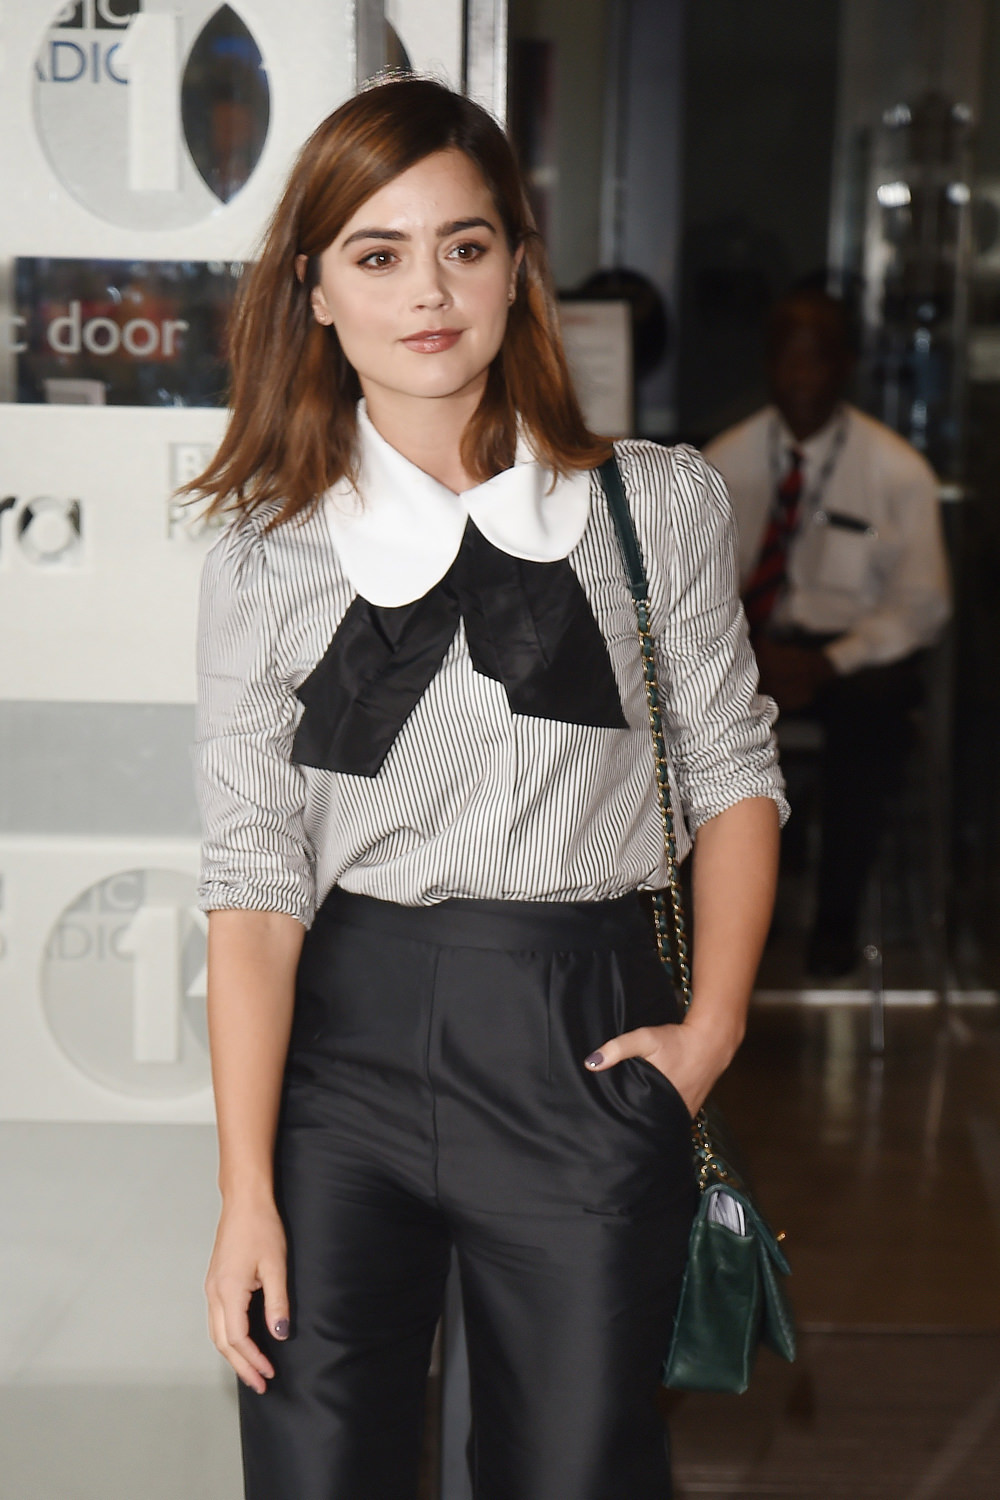 Fall In New England Wallpaper Jenna Coleman In Isa Arfen At The Bbc Radio One Studios